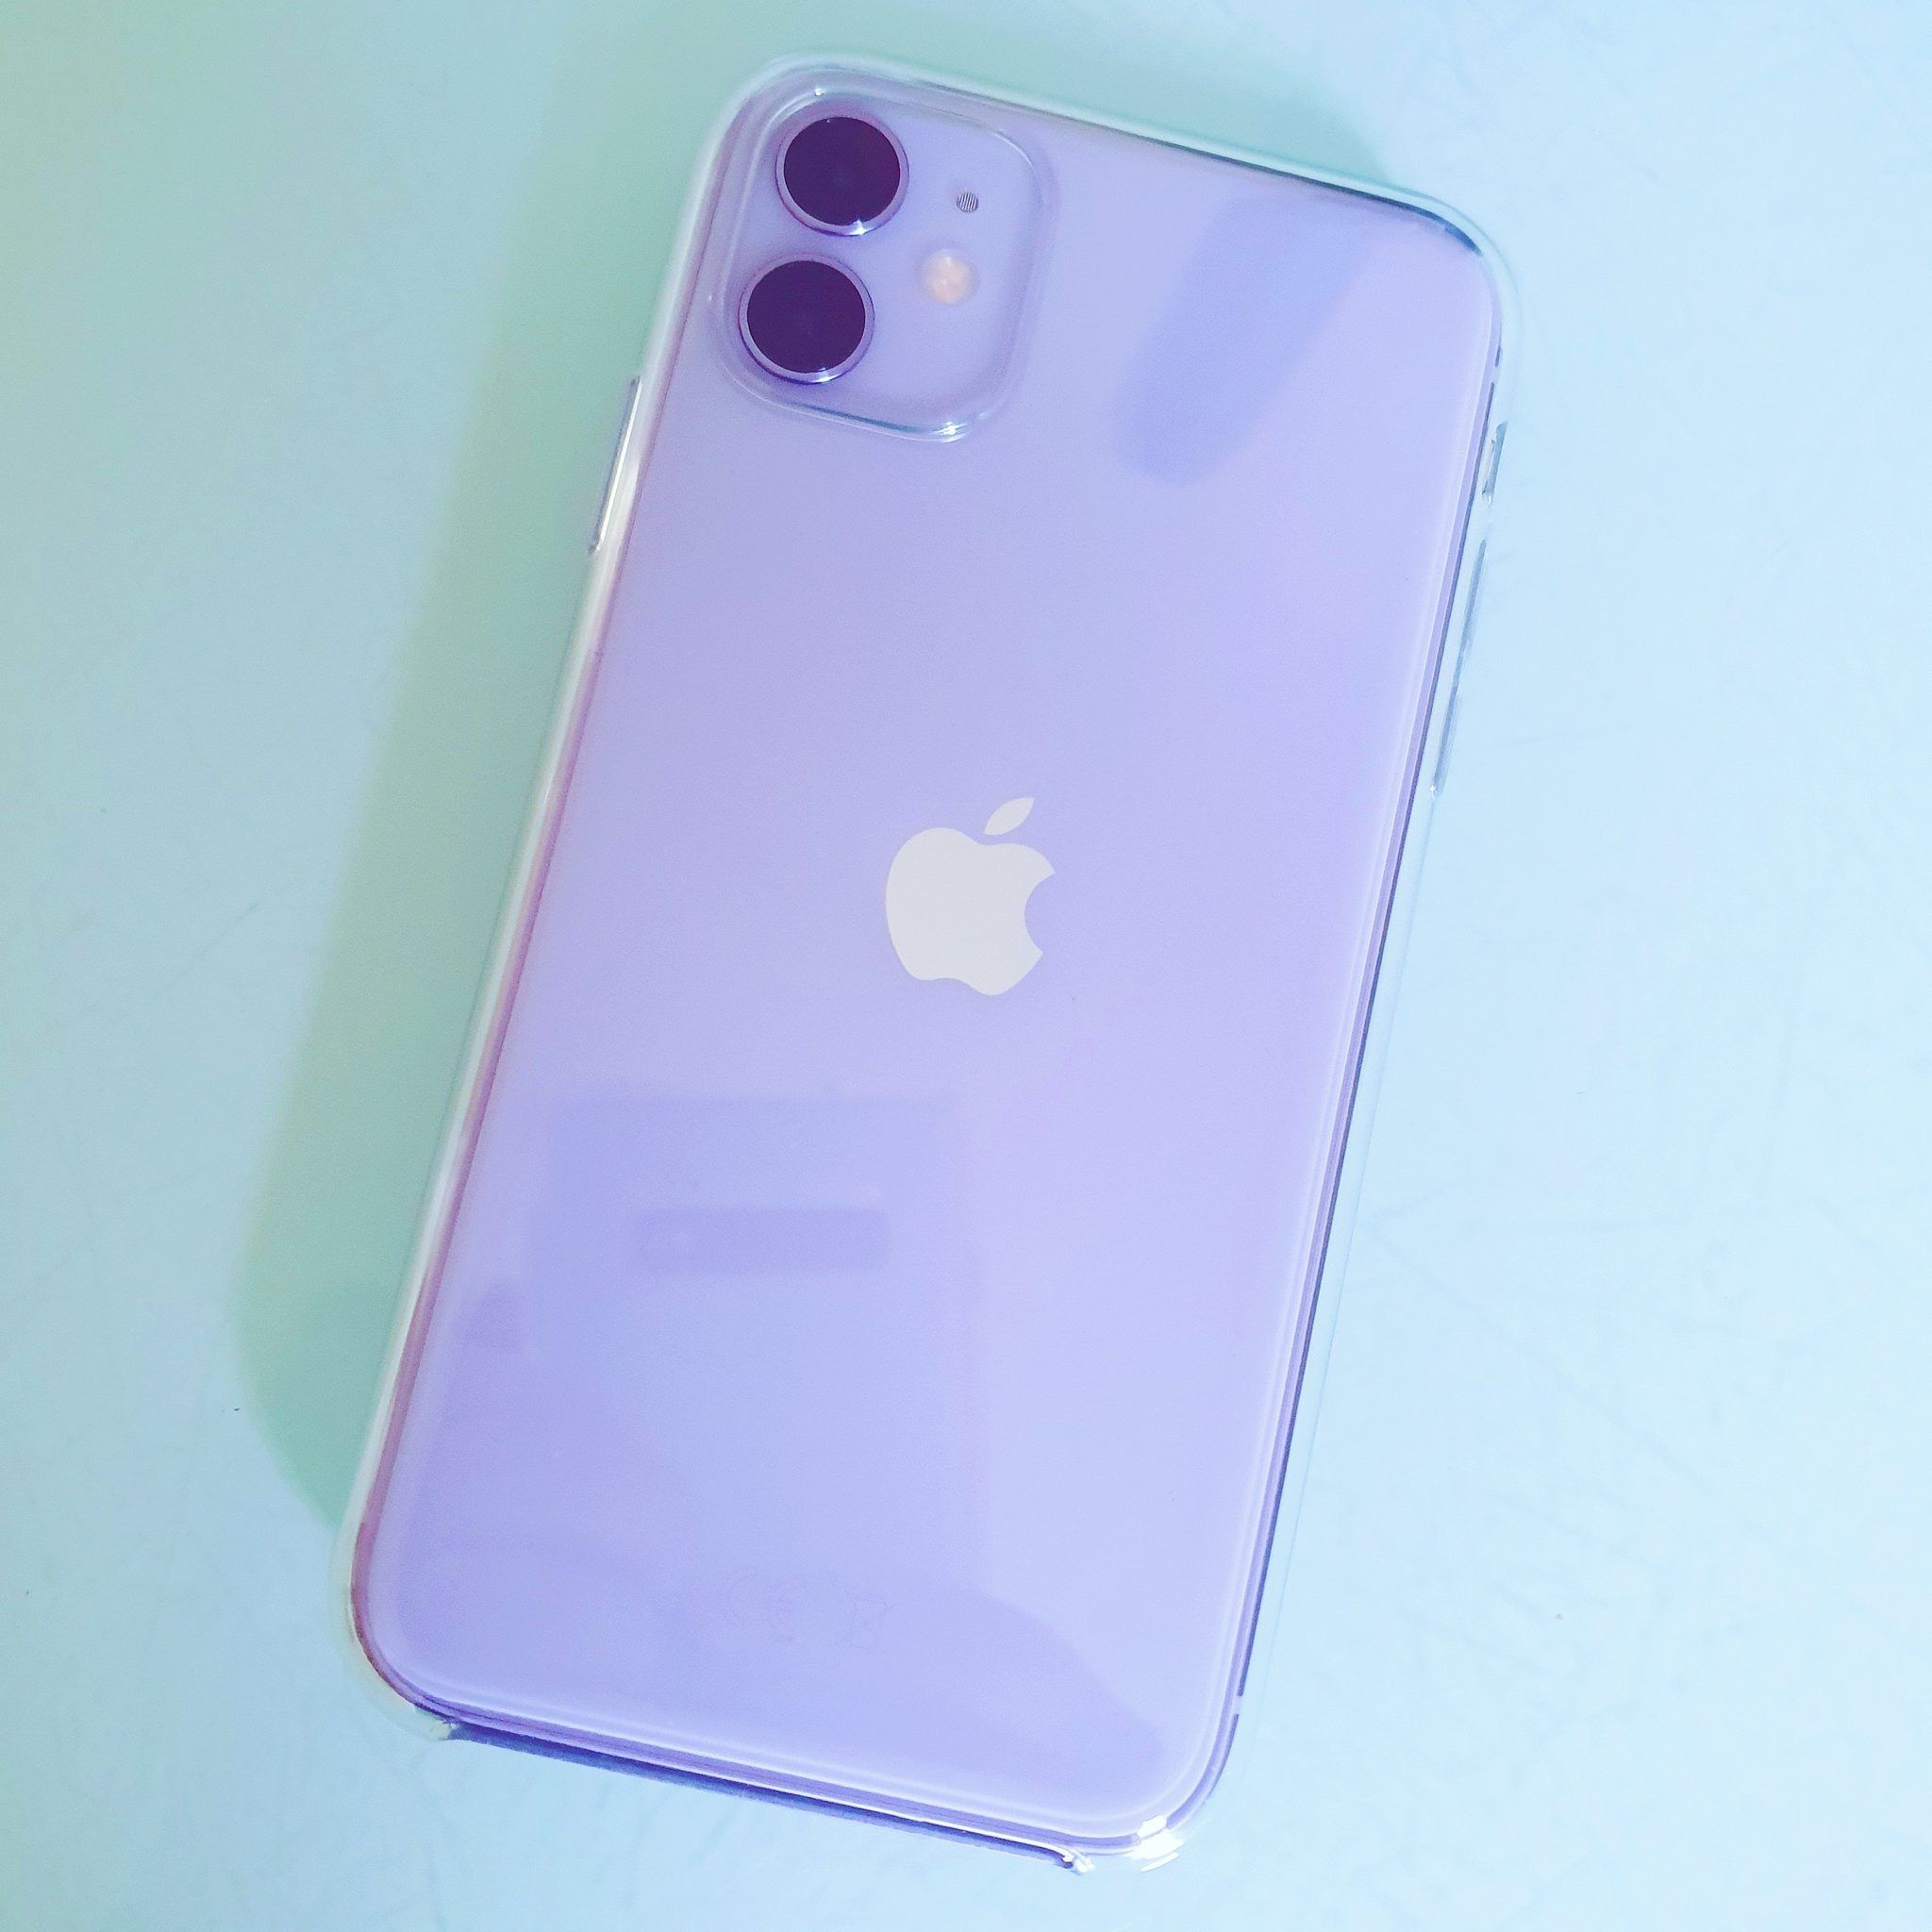 My Beautiful Iphone 11 In 2020 Iphone Free Iphone Giveaway Iphone Accessories